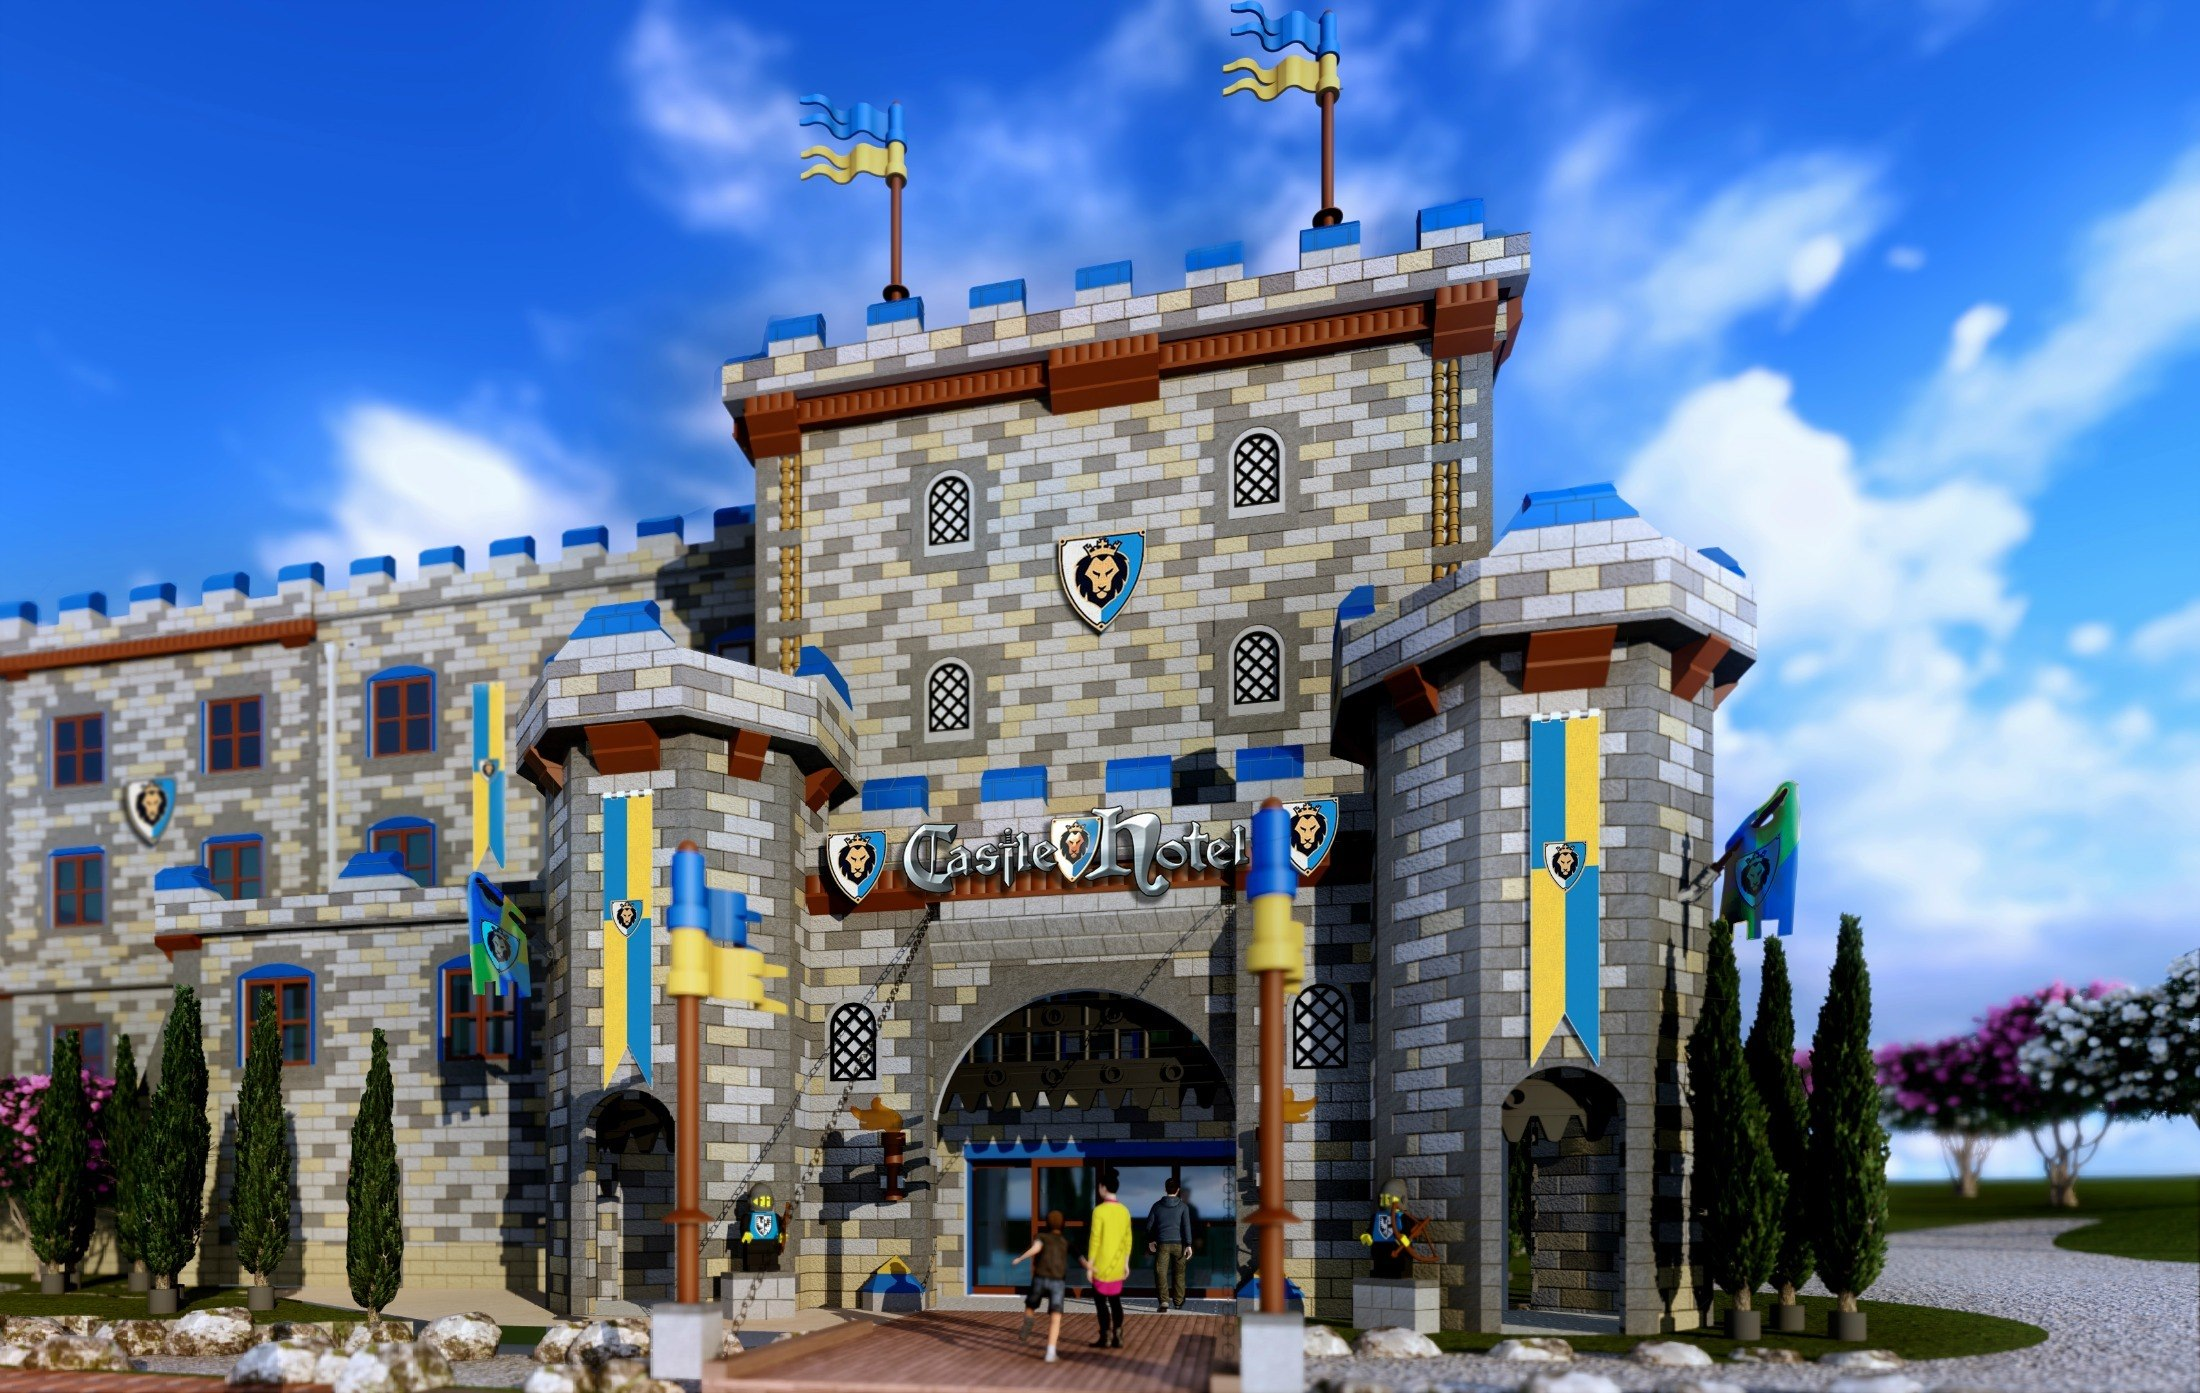 Hotels Near LEGOLAND include the brand new LEGOLAND Castle Hotel.